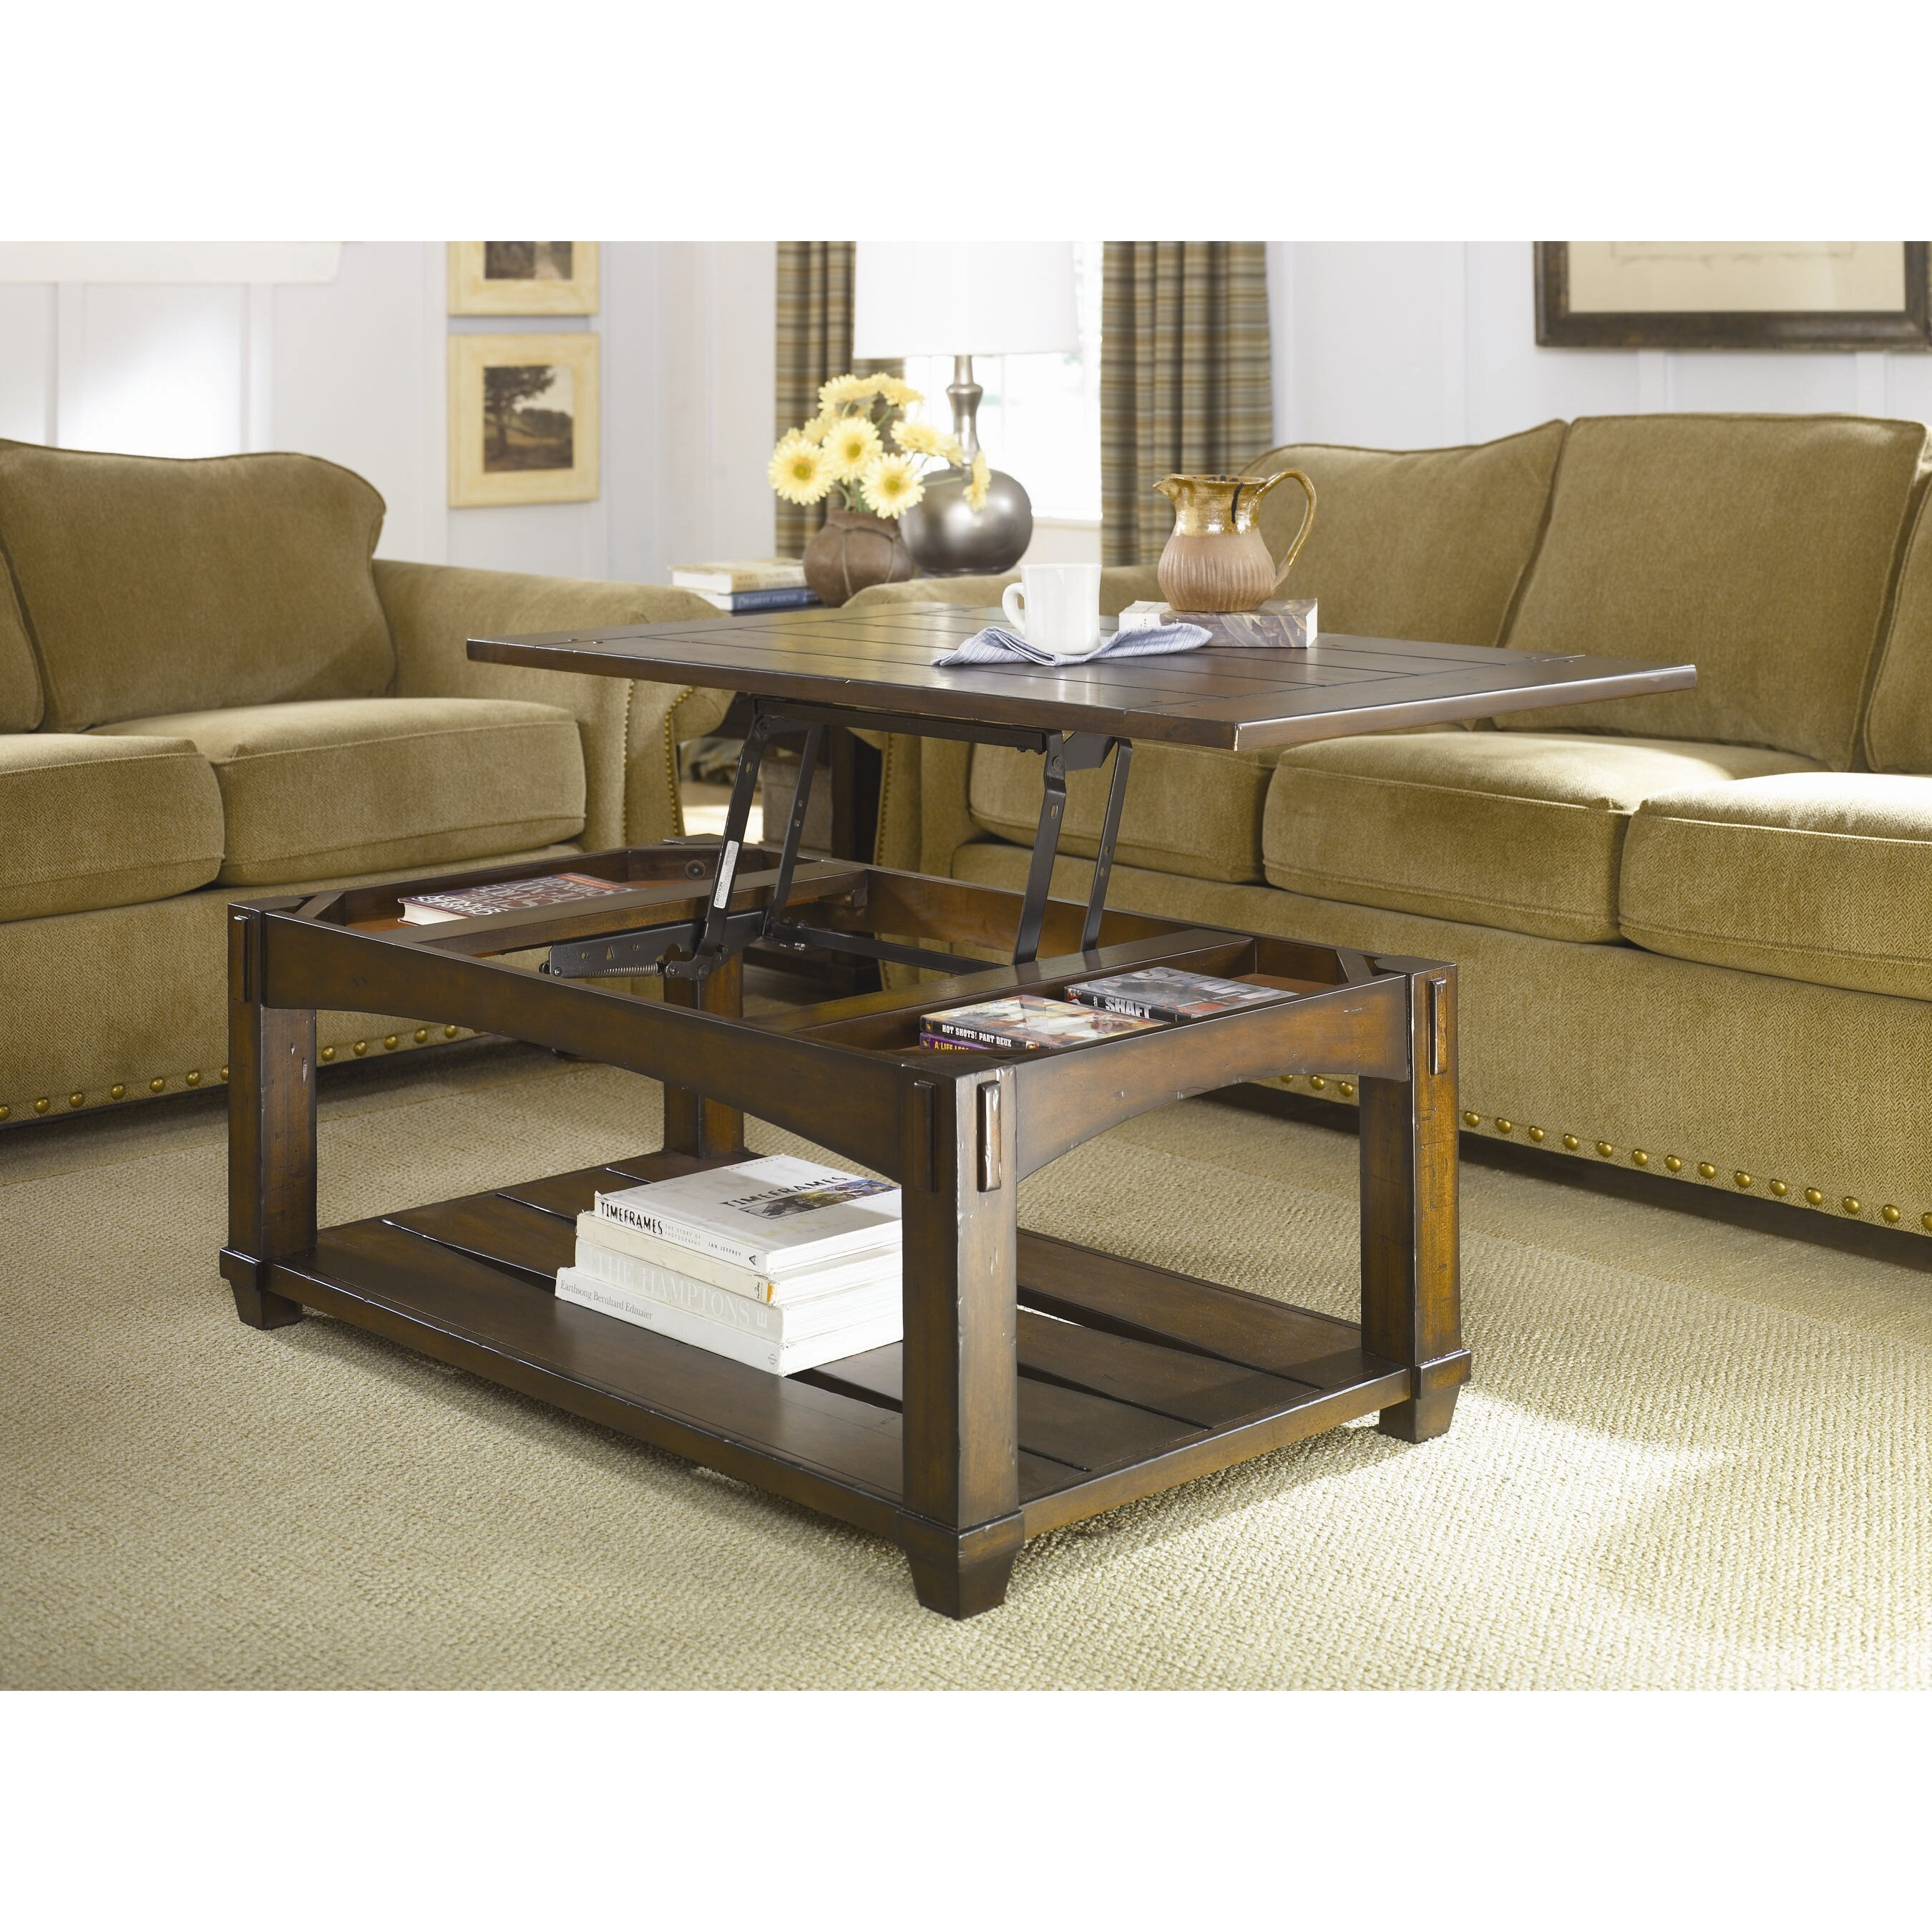 3 Piece Living Room Table Set Steve Silver Clemens Rectangular